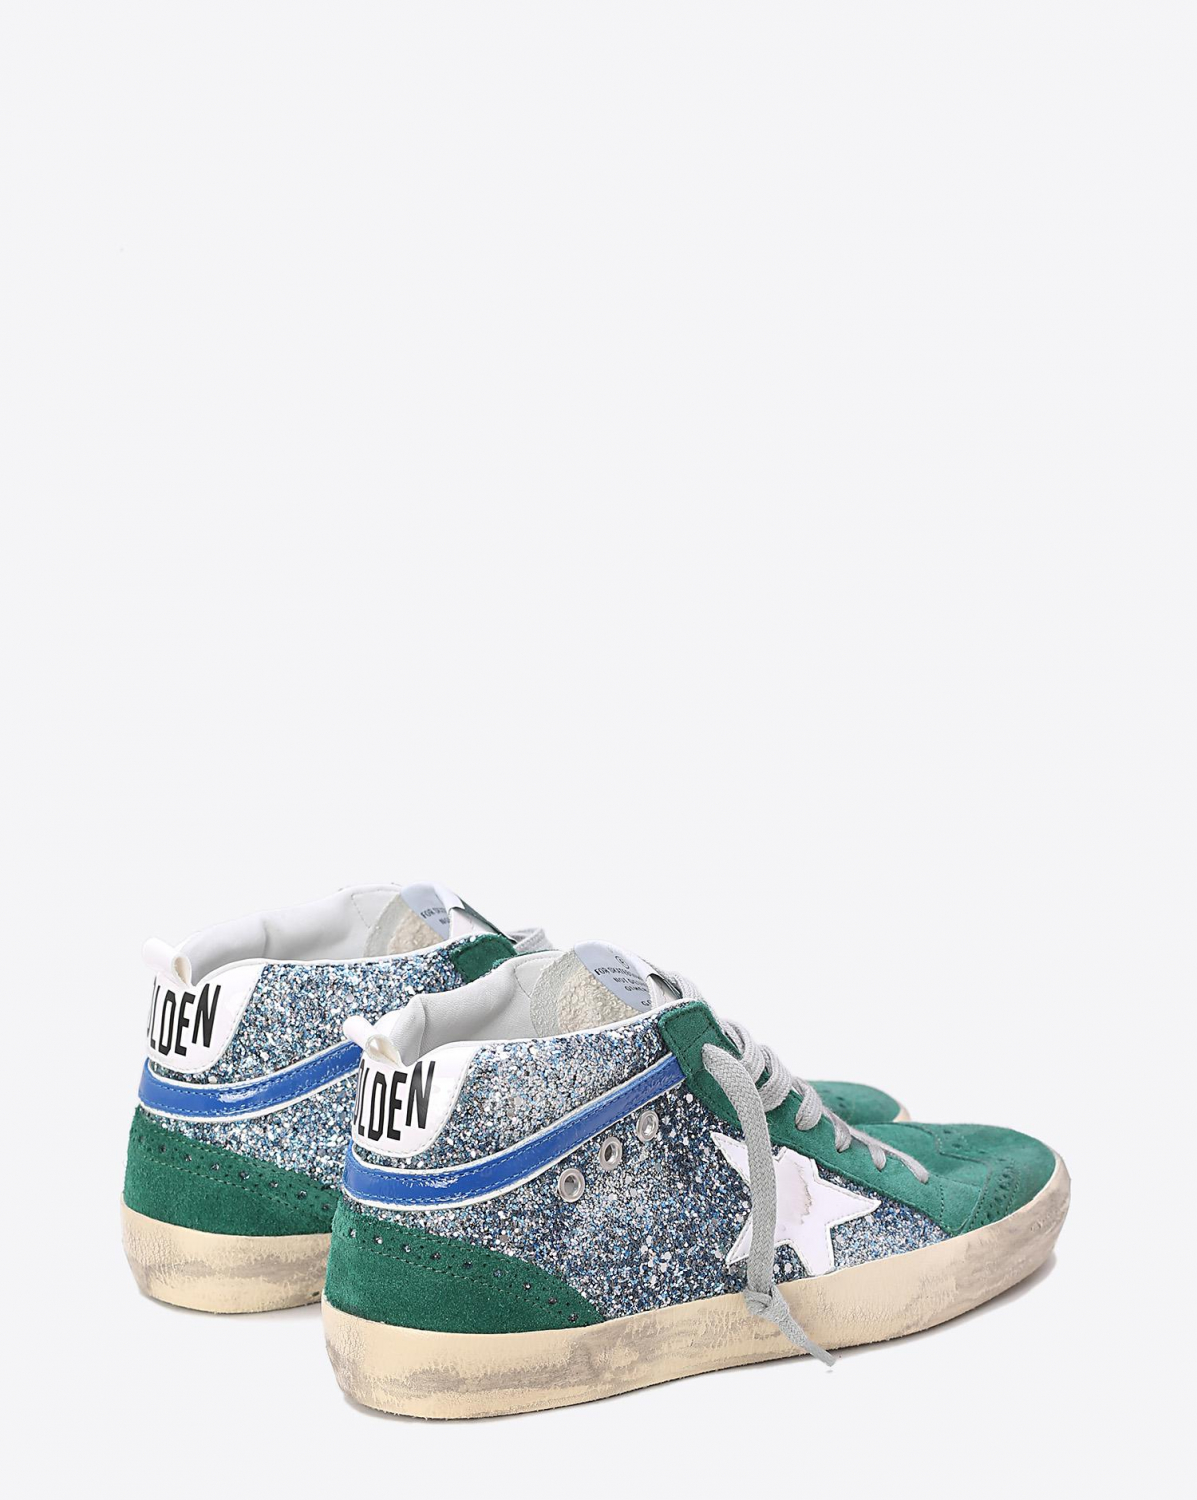 Golden Goose Woman Collection Sneakers Mid Star Green Glitter White Patent Star